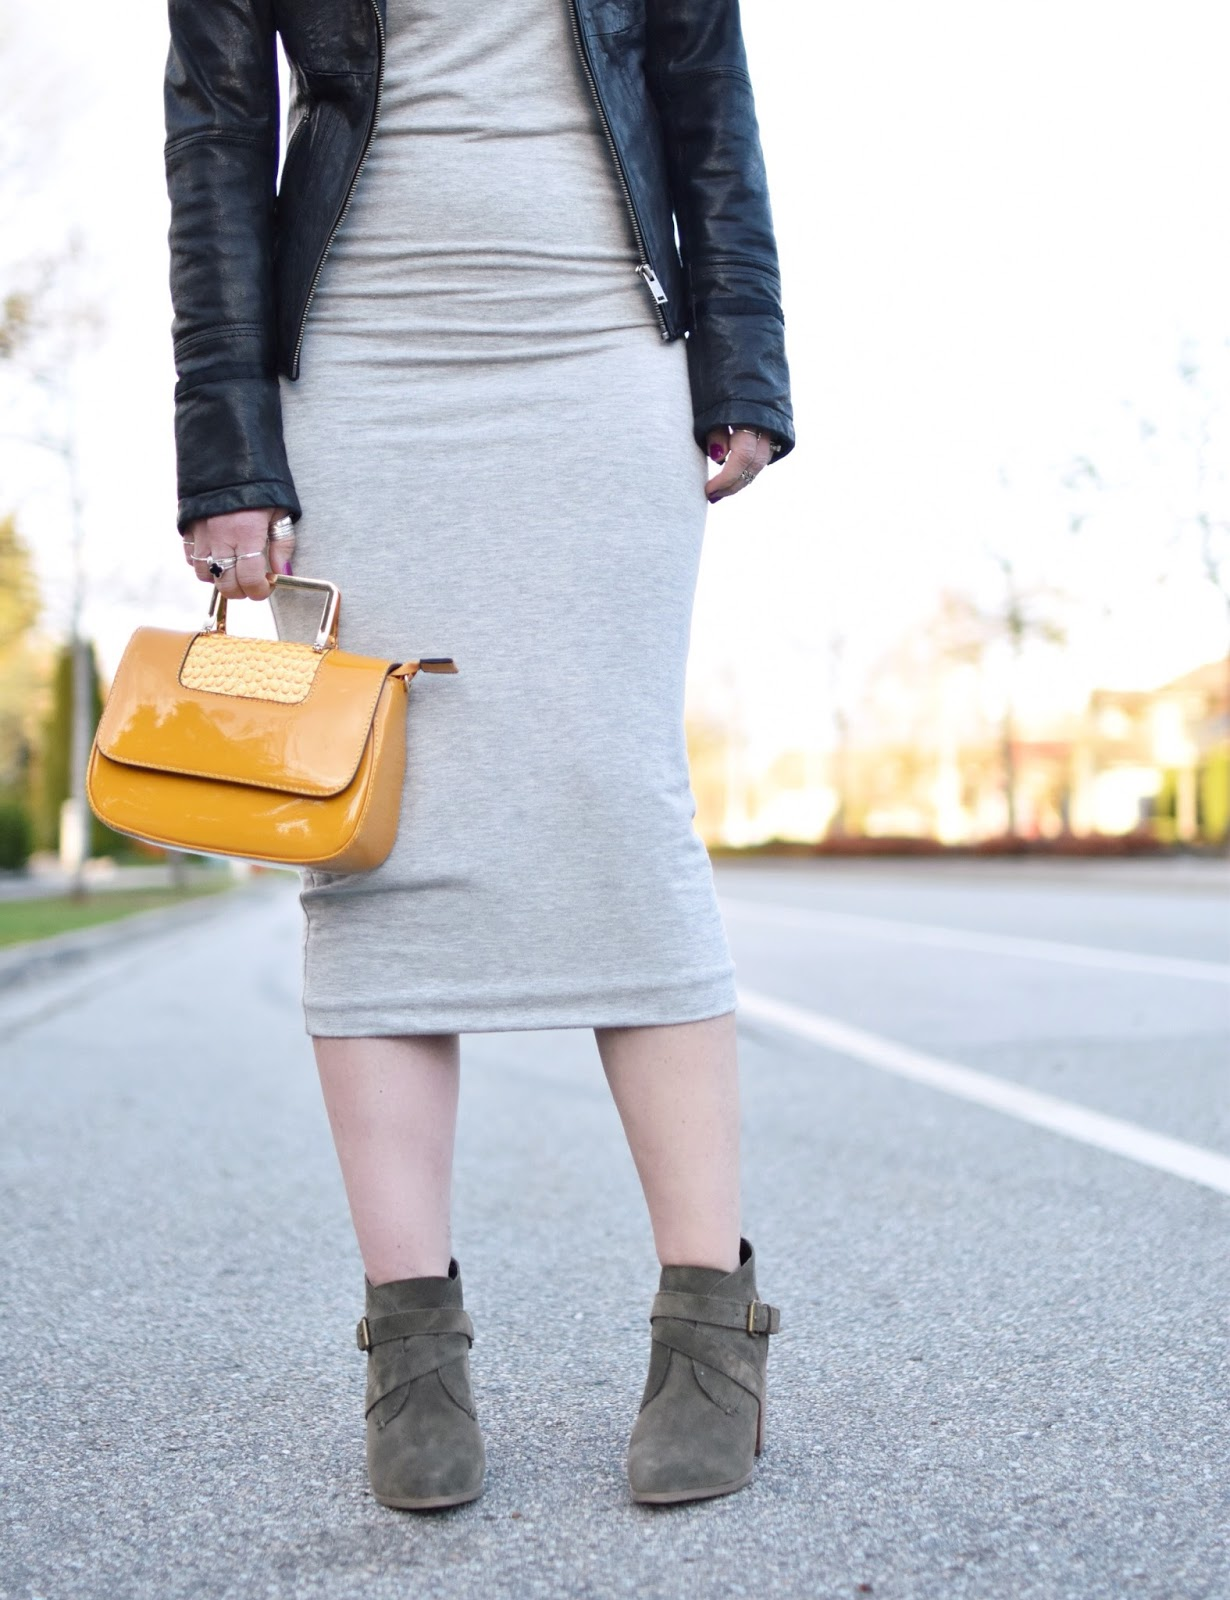 Monika Faulkner outfit inspiration - t-shirt dress, moto jacket, suede ankle boots, patent yellow mini bag